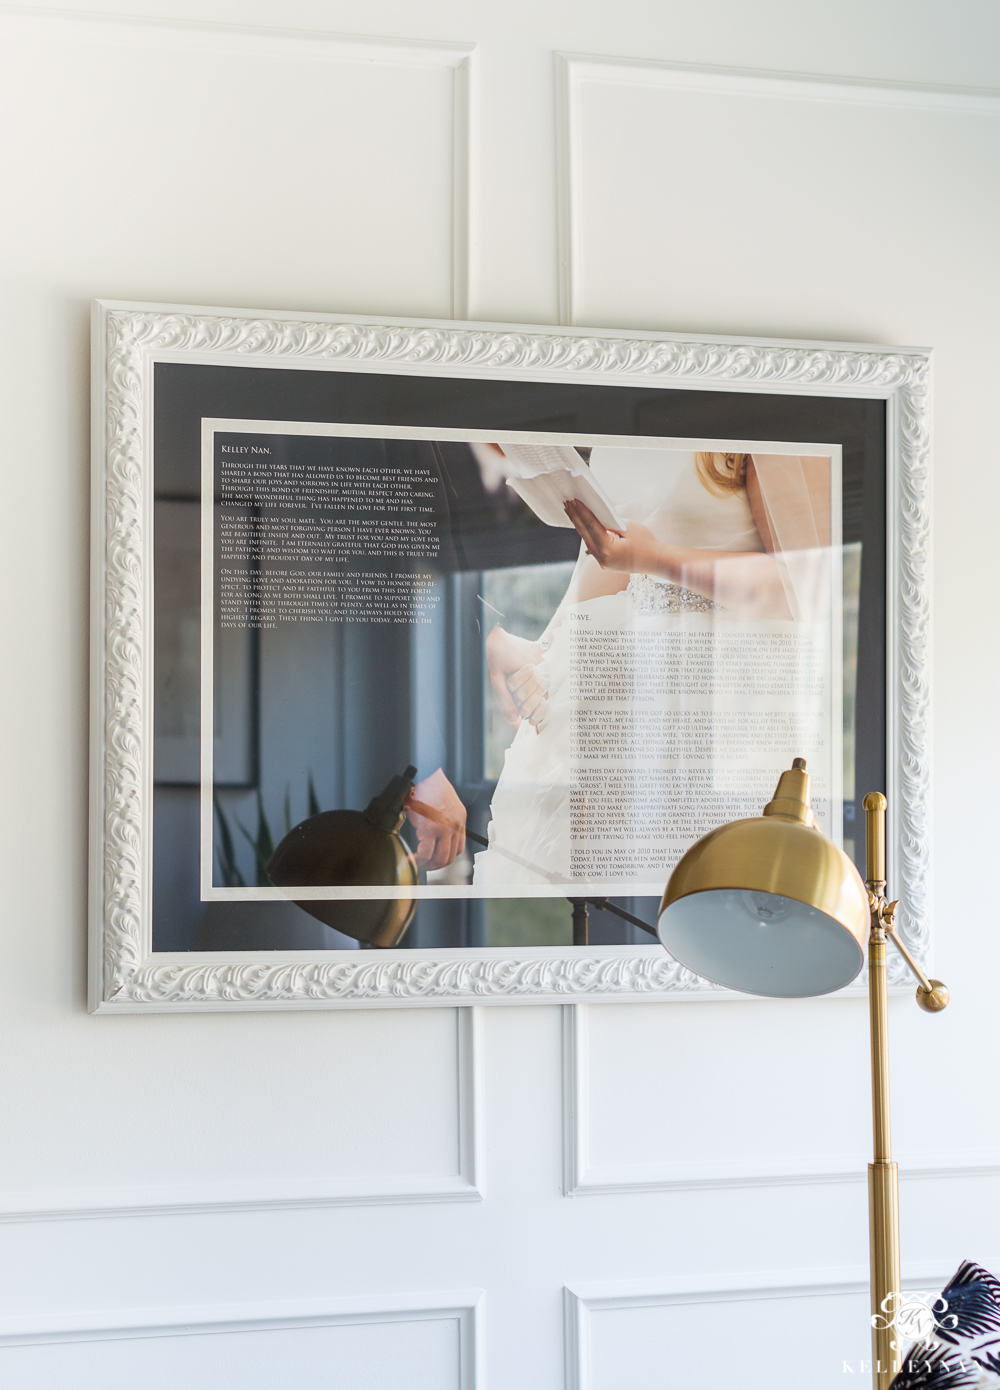 Wedding memento idea- hanging vows on the wall